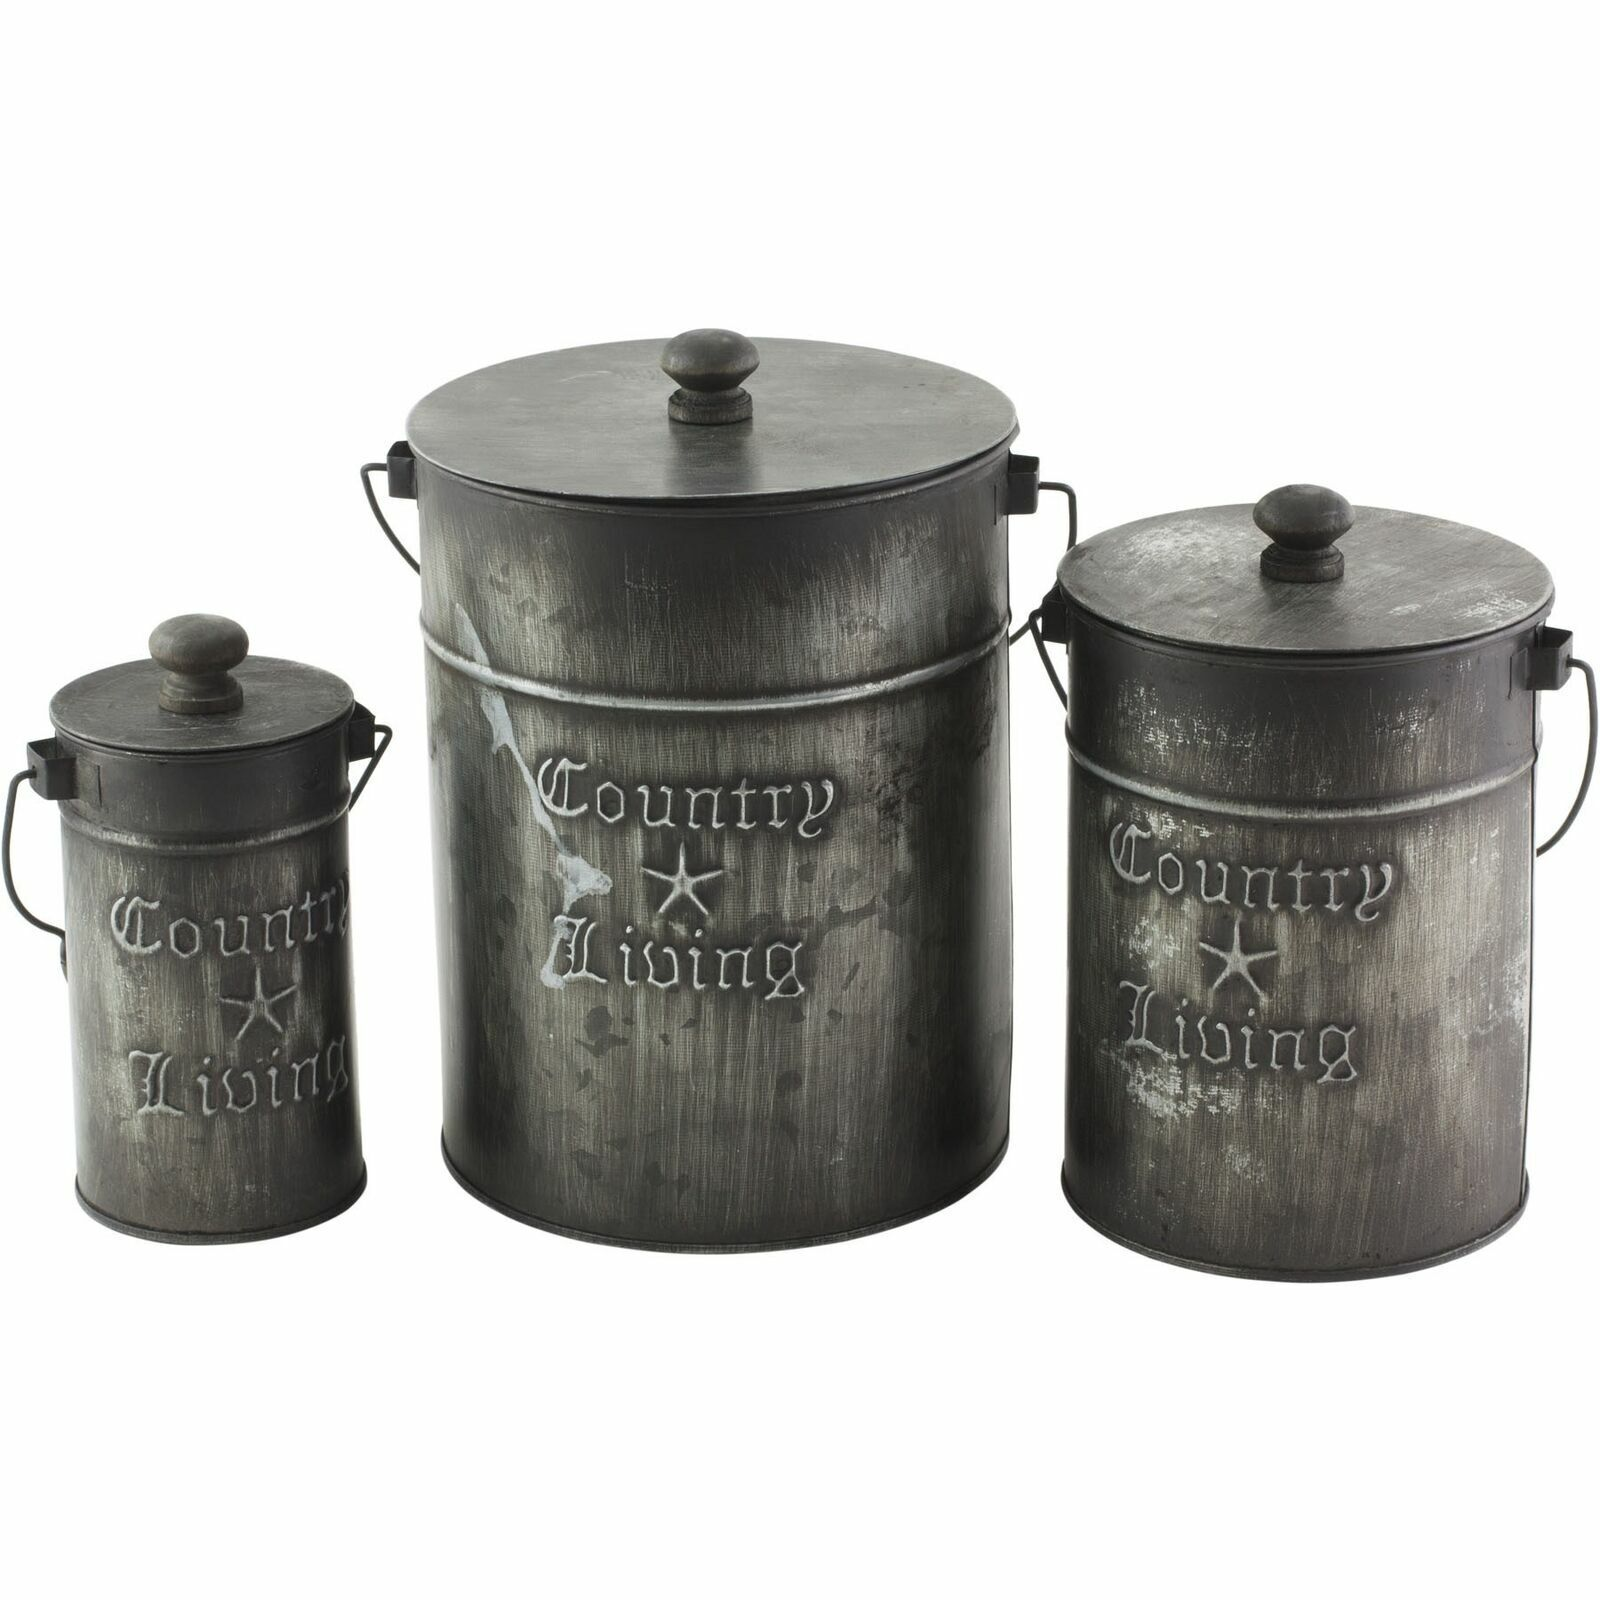 Your Heart's Delight Country Living Canisters + Lids, Set/3